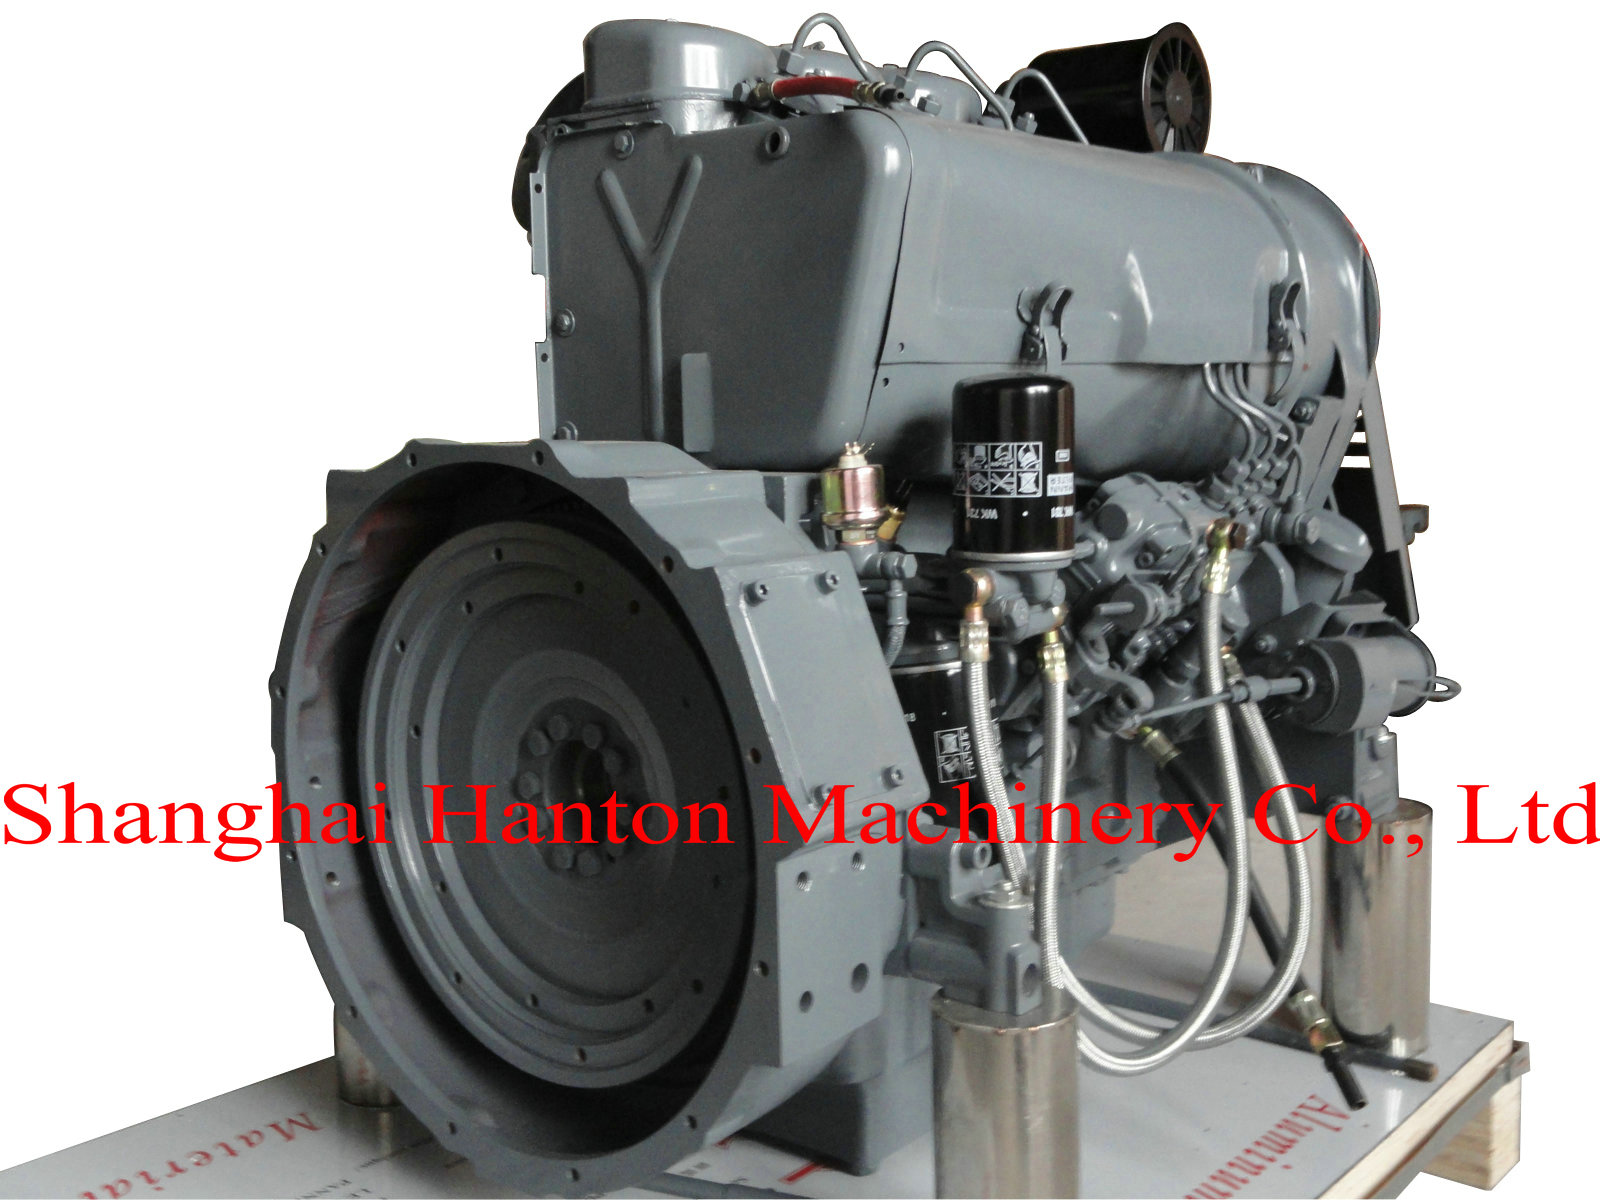 Deutz F3L912 diesel engine for genset and water pump set and special machineries